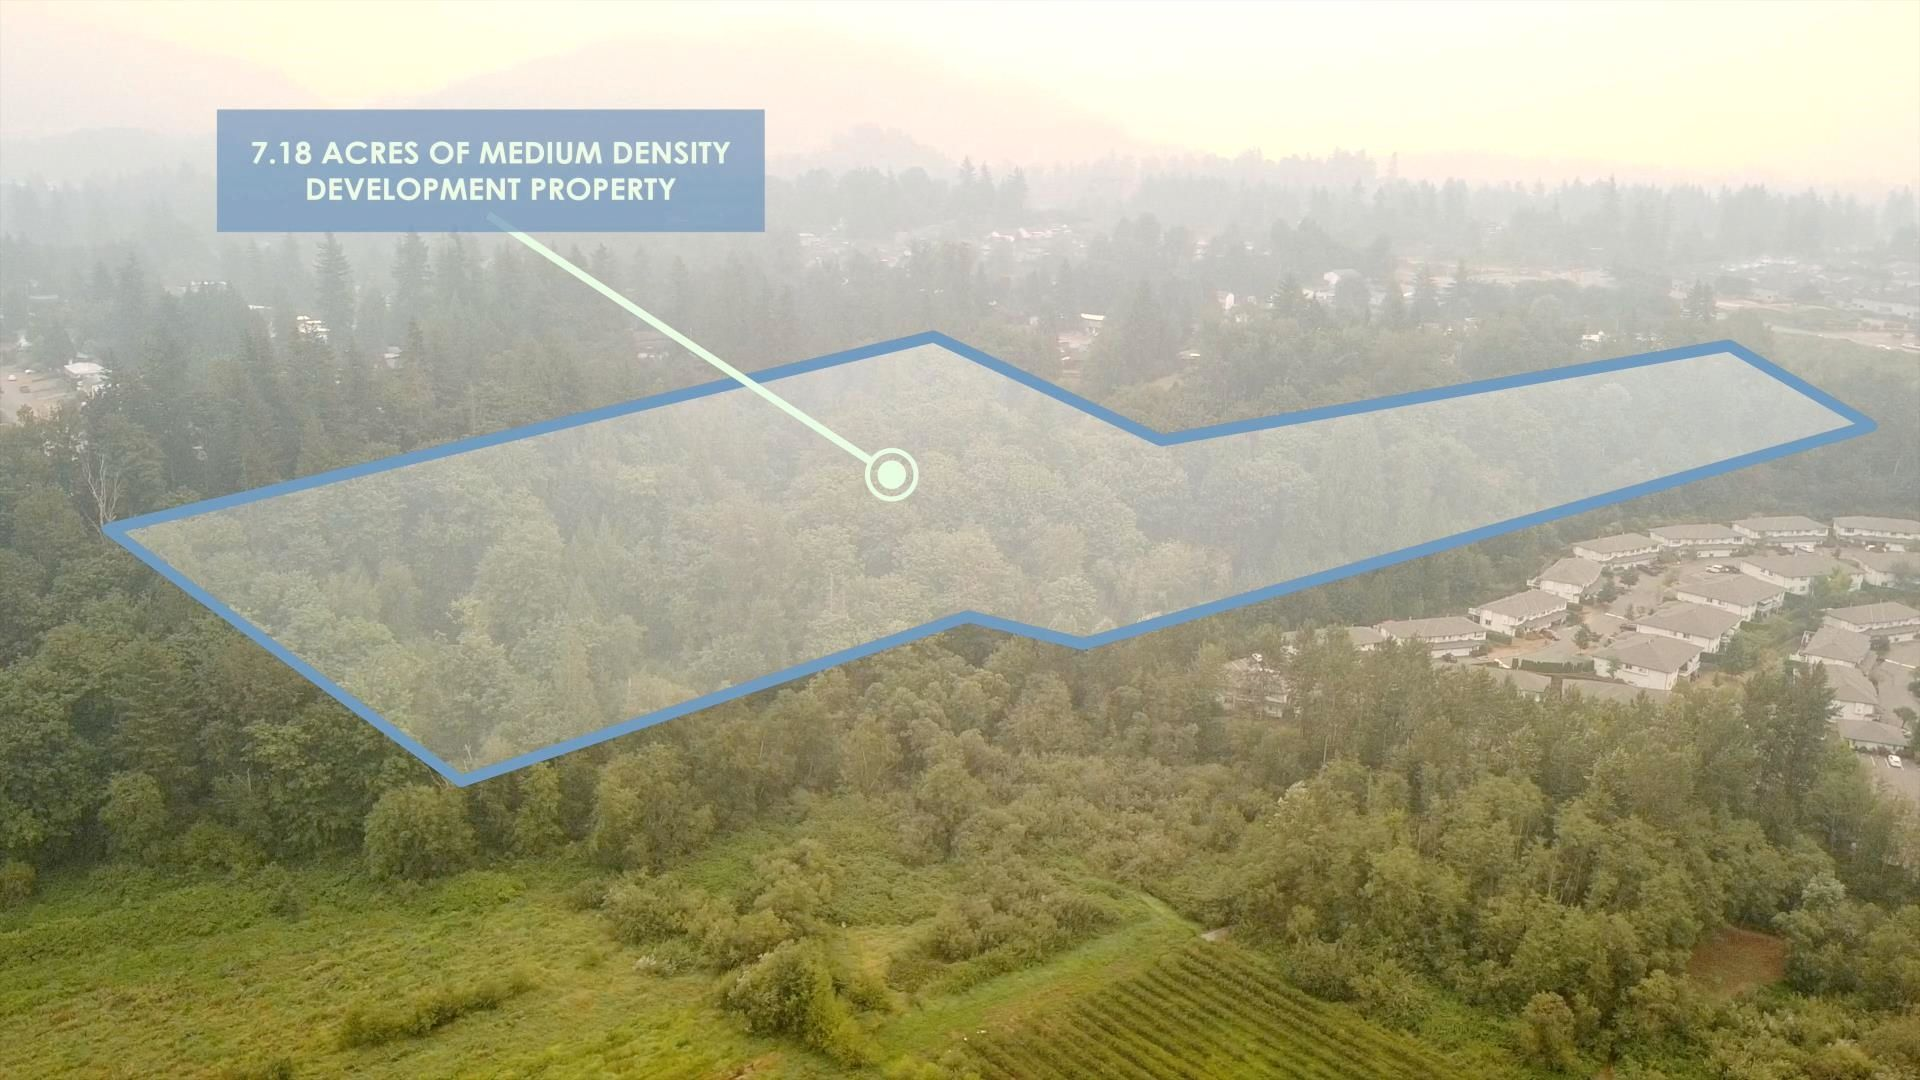 Main Photo: 34344 HAZELWOOD Avenue in Abbotsford: Central Abbotsford Land Commercial for sale : MLS®# C8040032